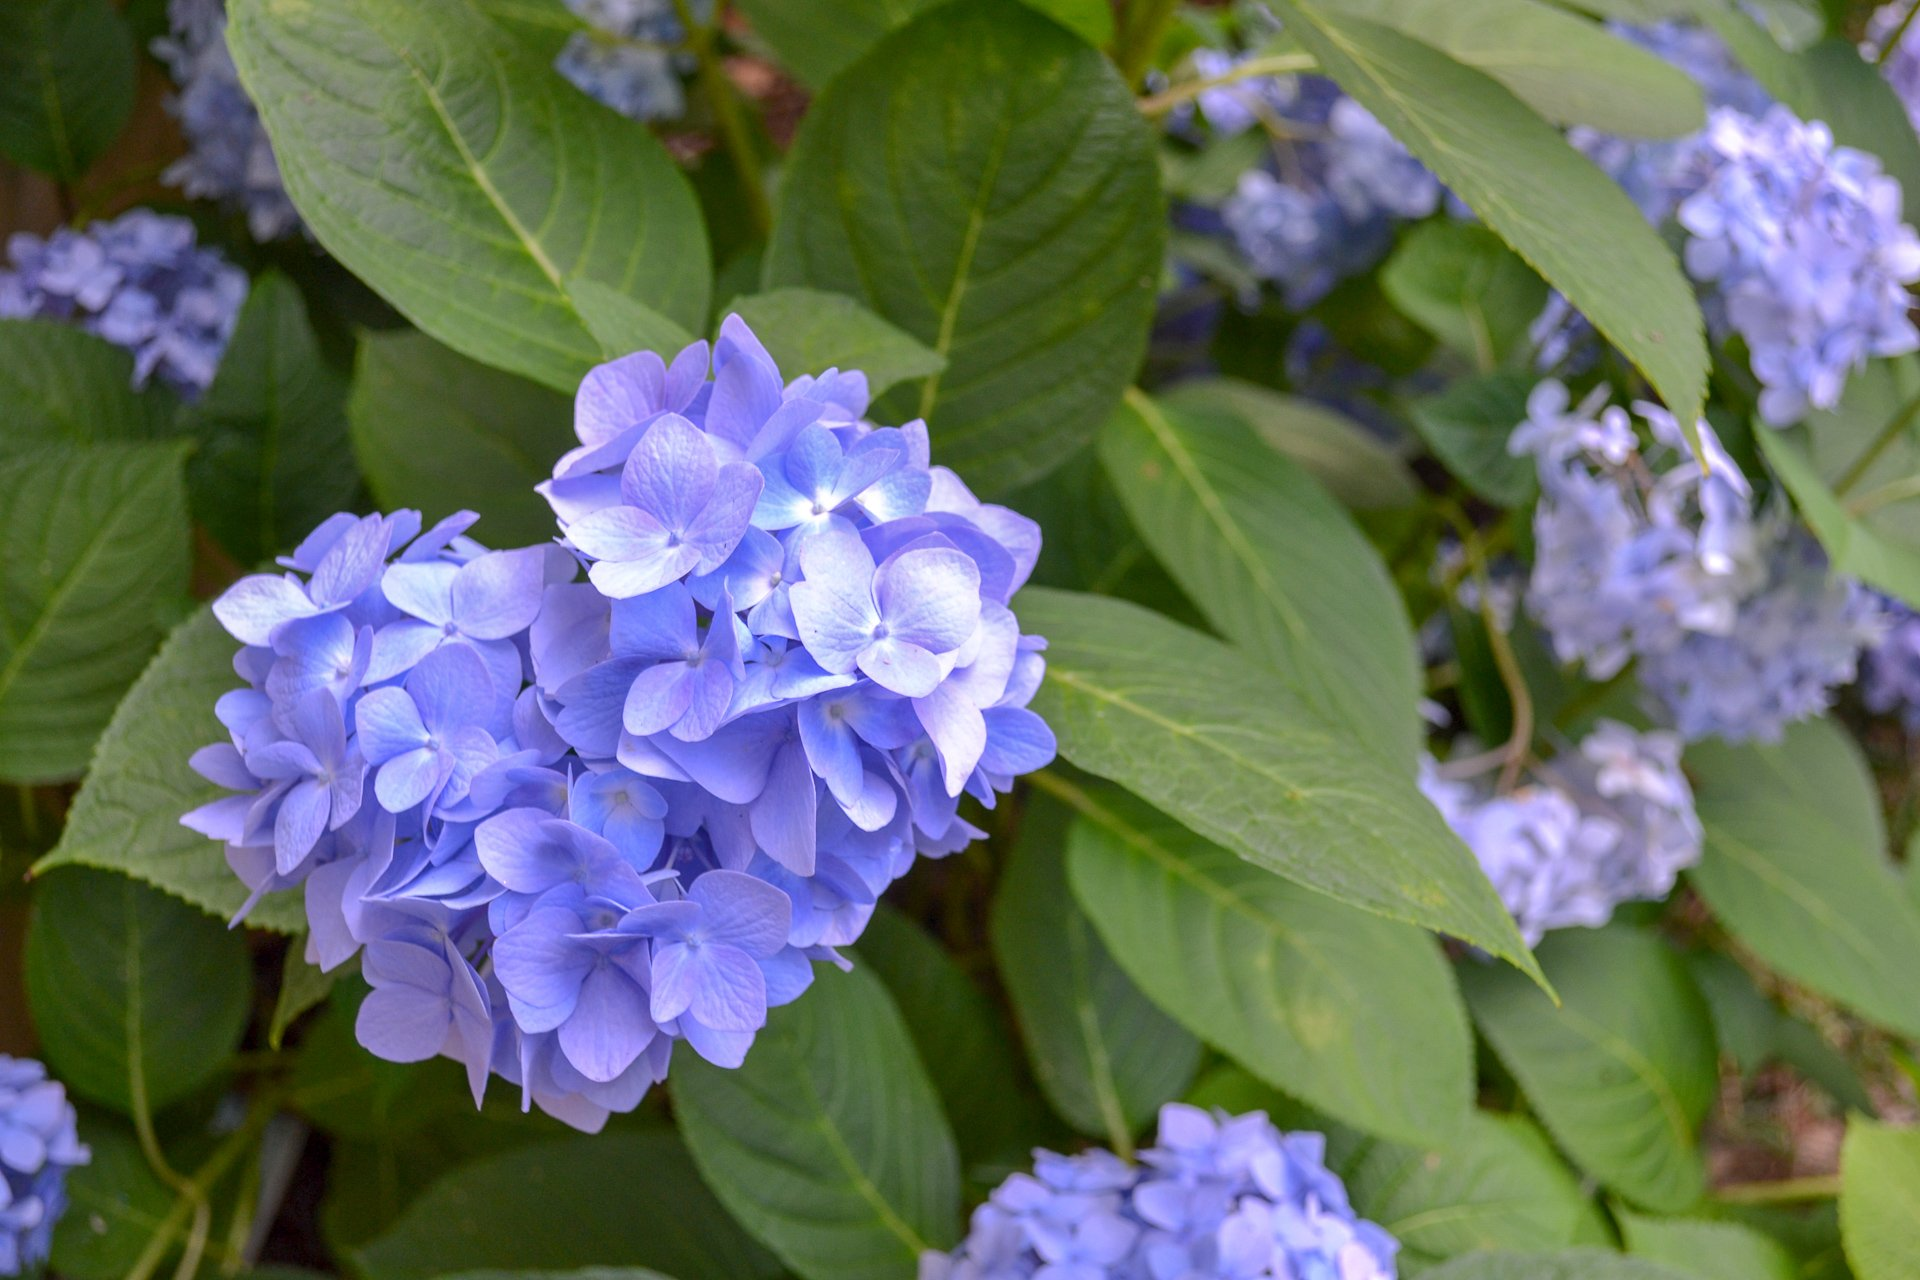 purpley blue hydrangea